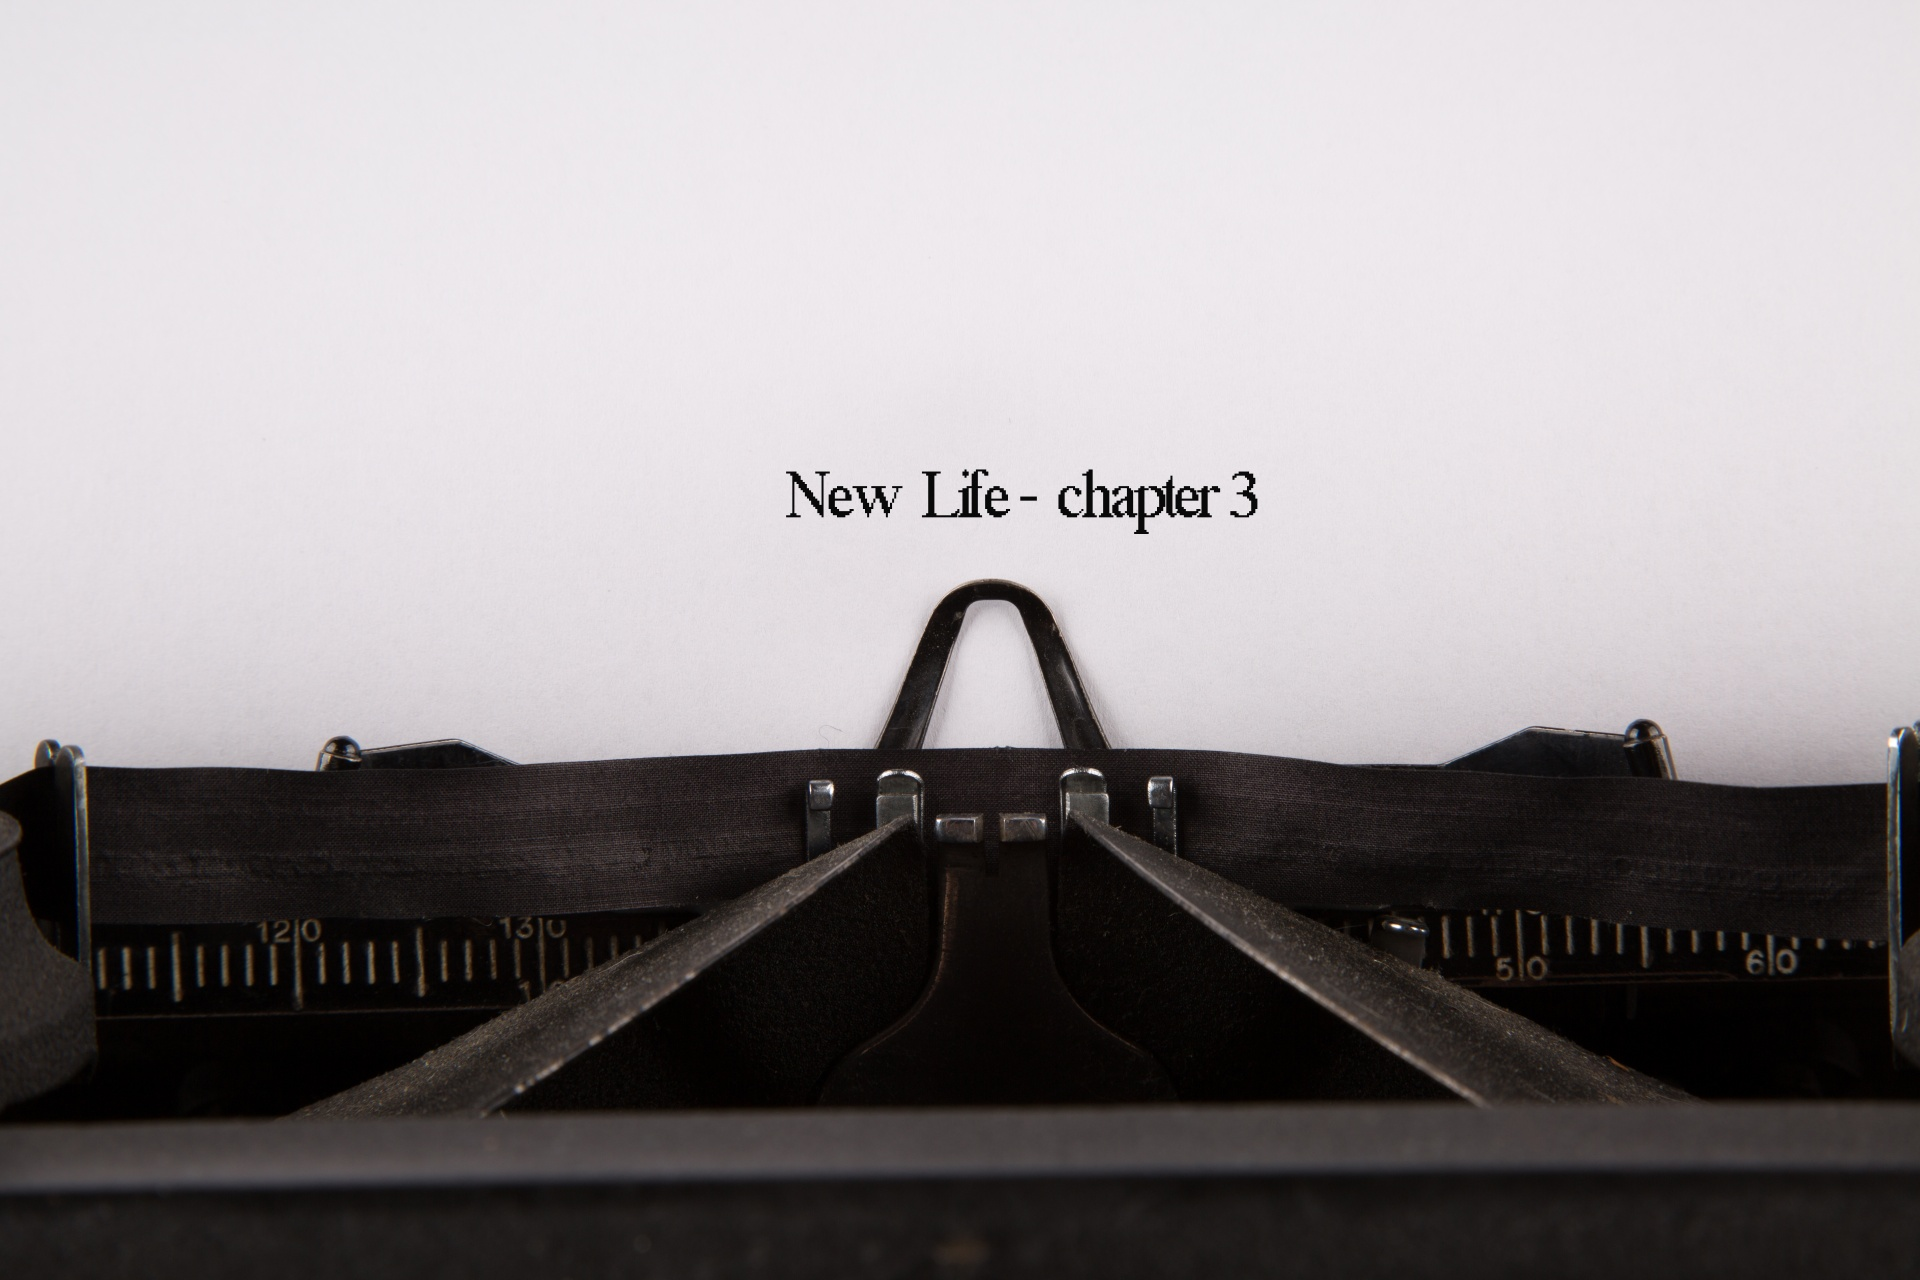 new-life-chapter-3 (1)